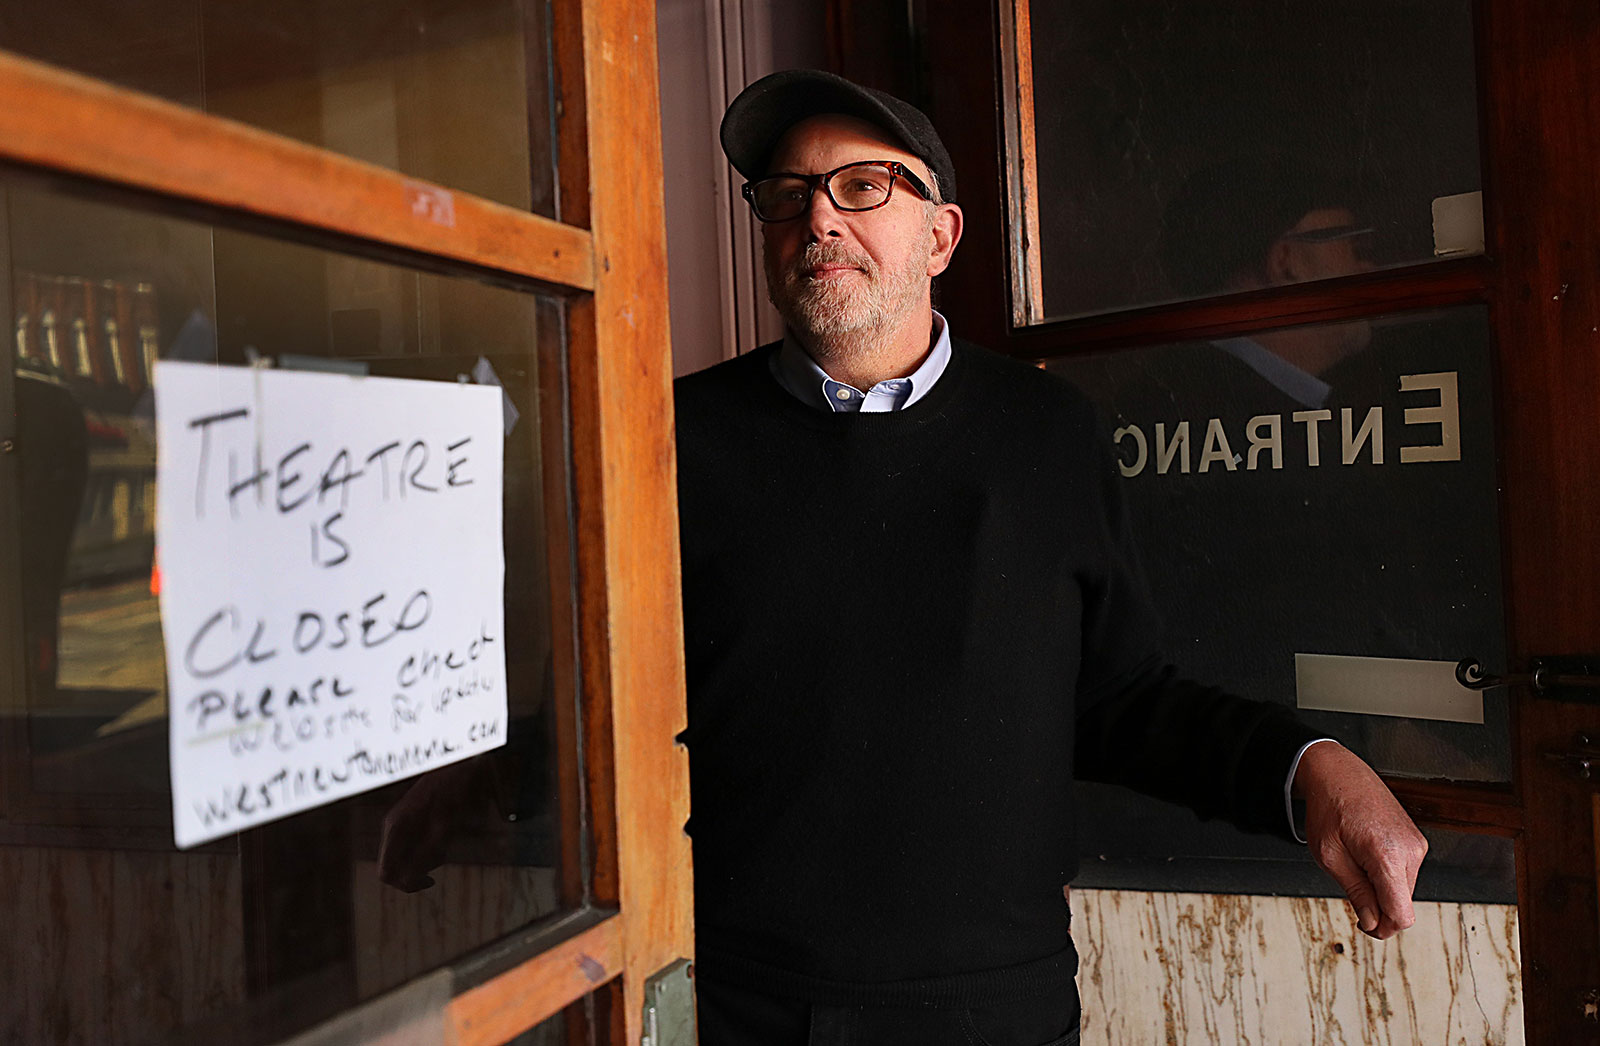 David Bramante, the owner of West Newton Theatre in Newton, Massachusetts, stands in the doorway of the theater on March 27. Bramante had to close the theatre due to the coronavirus pandemic.